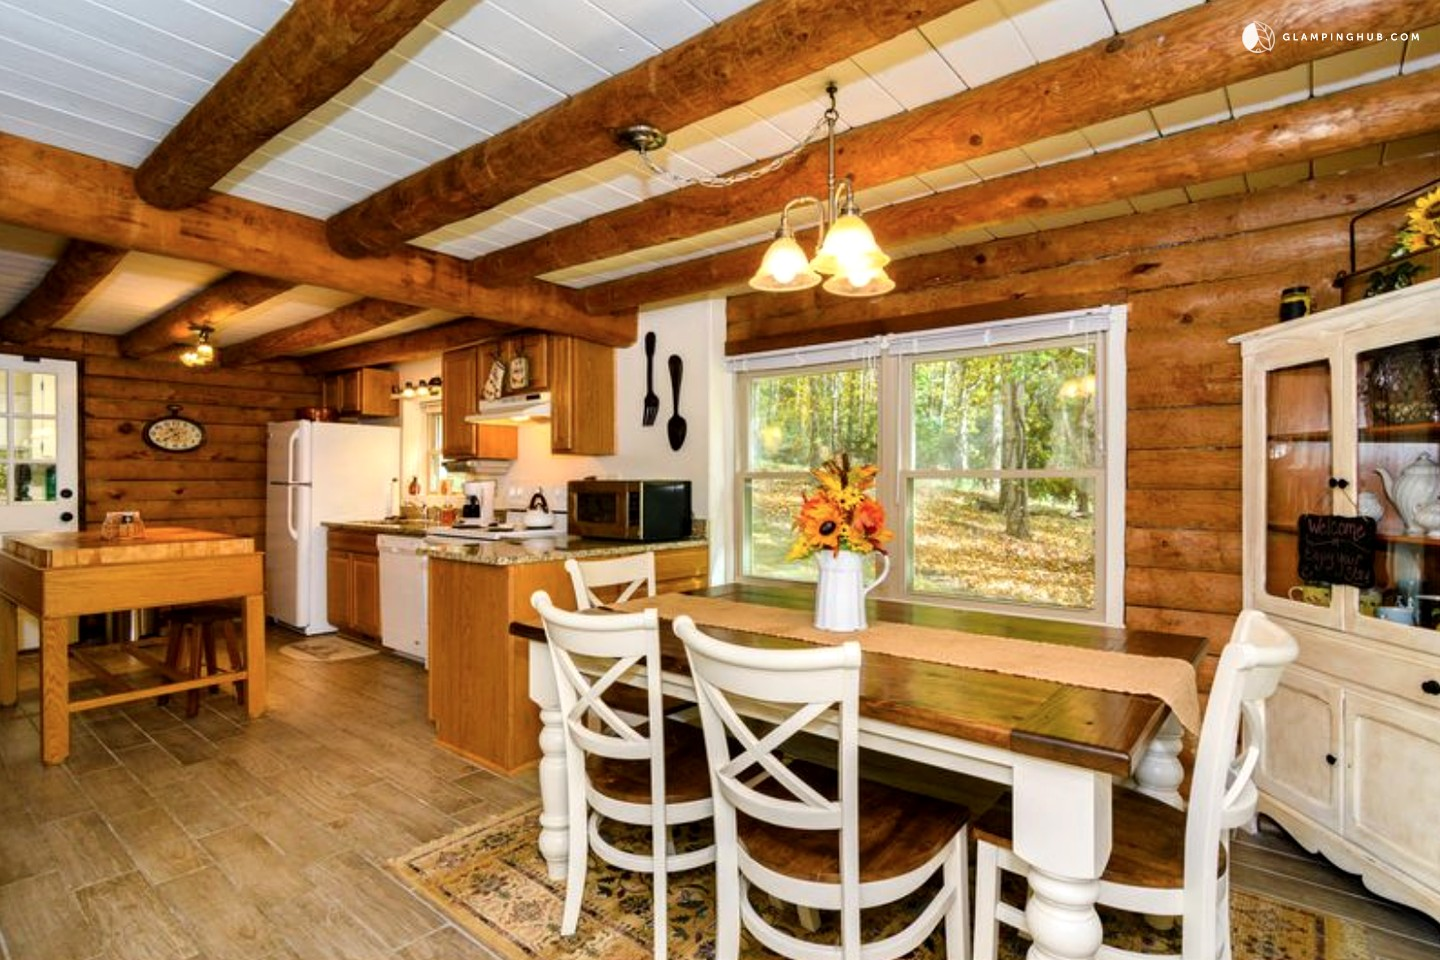 Cabin rental with hot tub near asheville north carolina for Asheville nc luxury cabin rentals